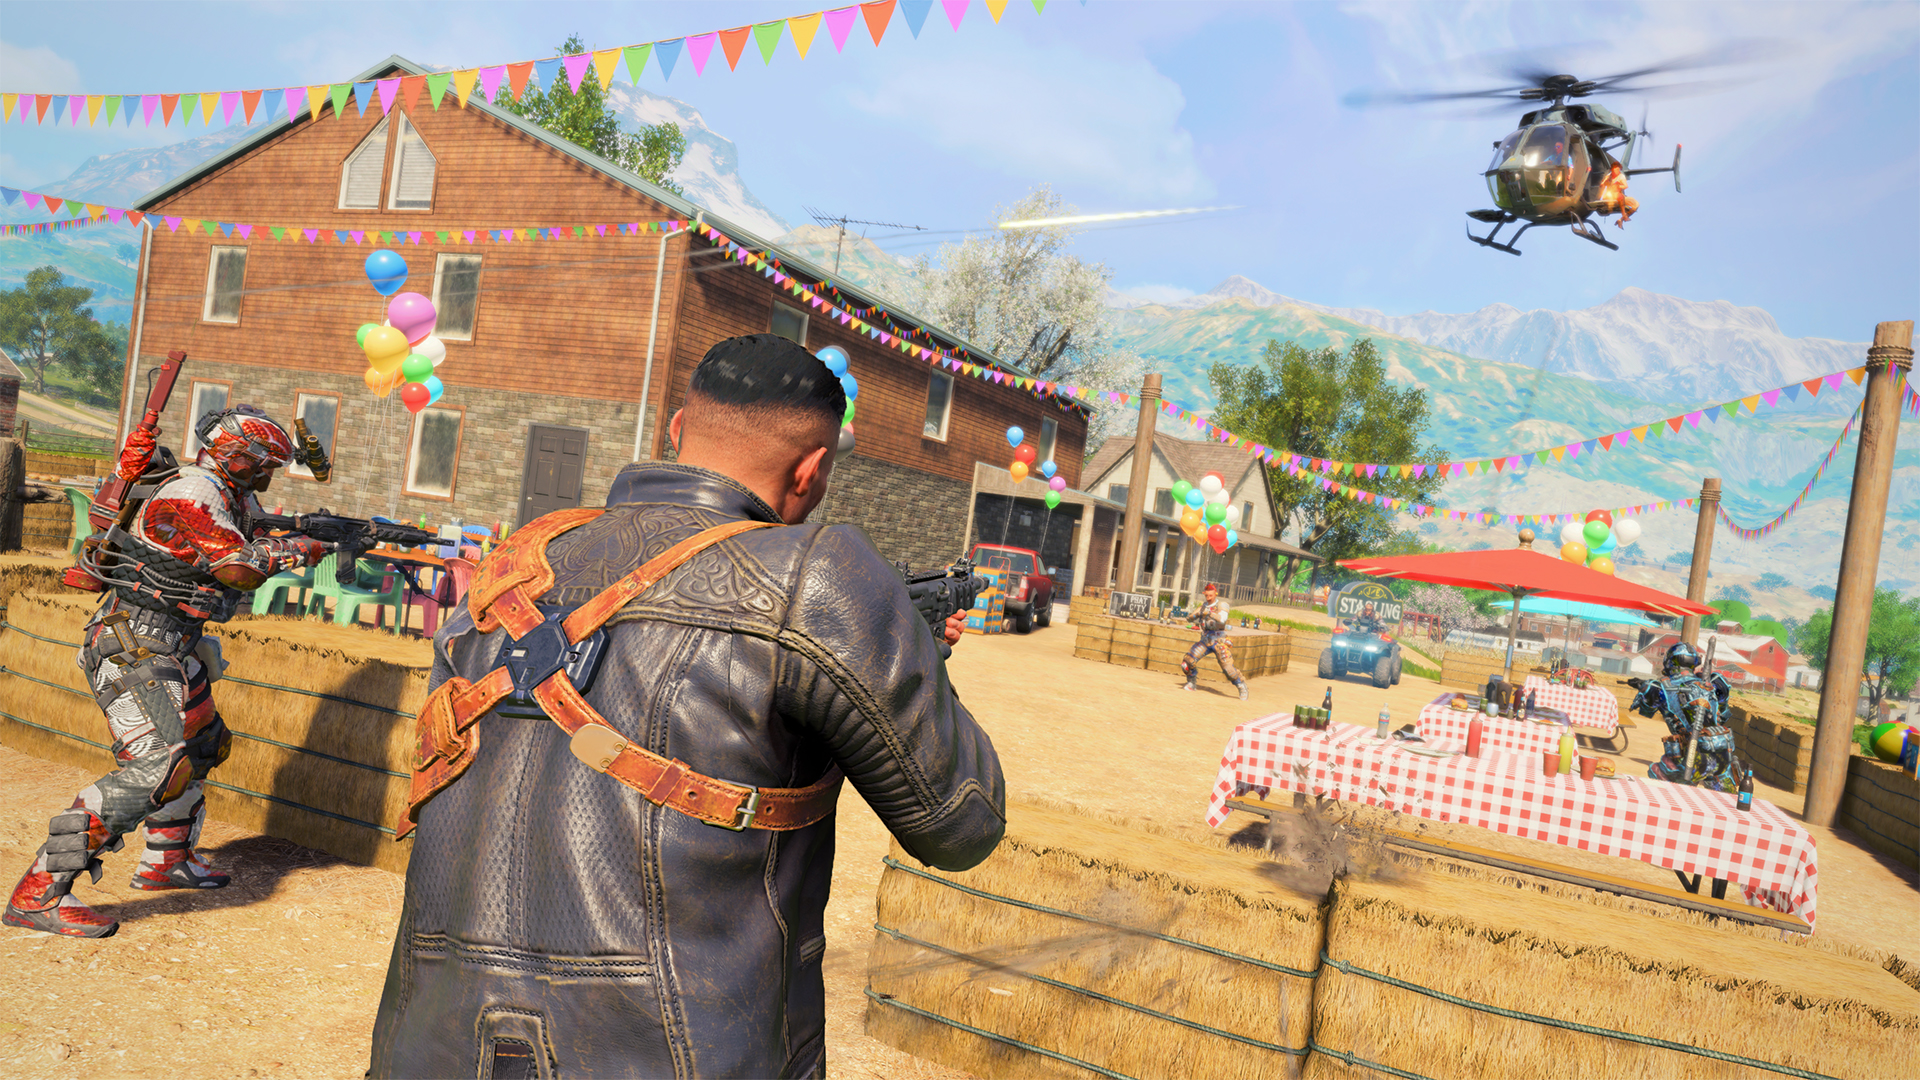 Call of Duty: Black Ops 4 Has A New Patch For Their Game, Community Challenge Is Almost Completed